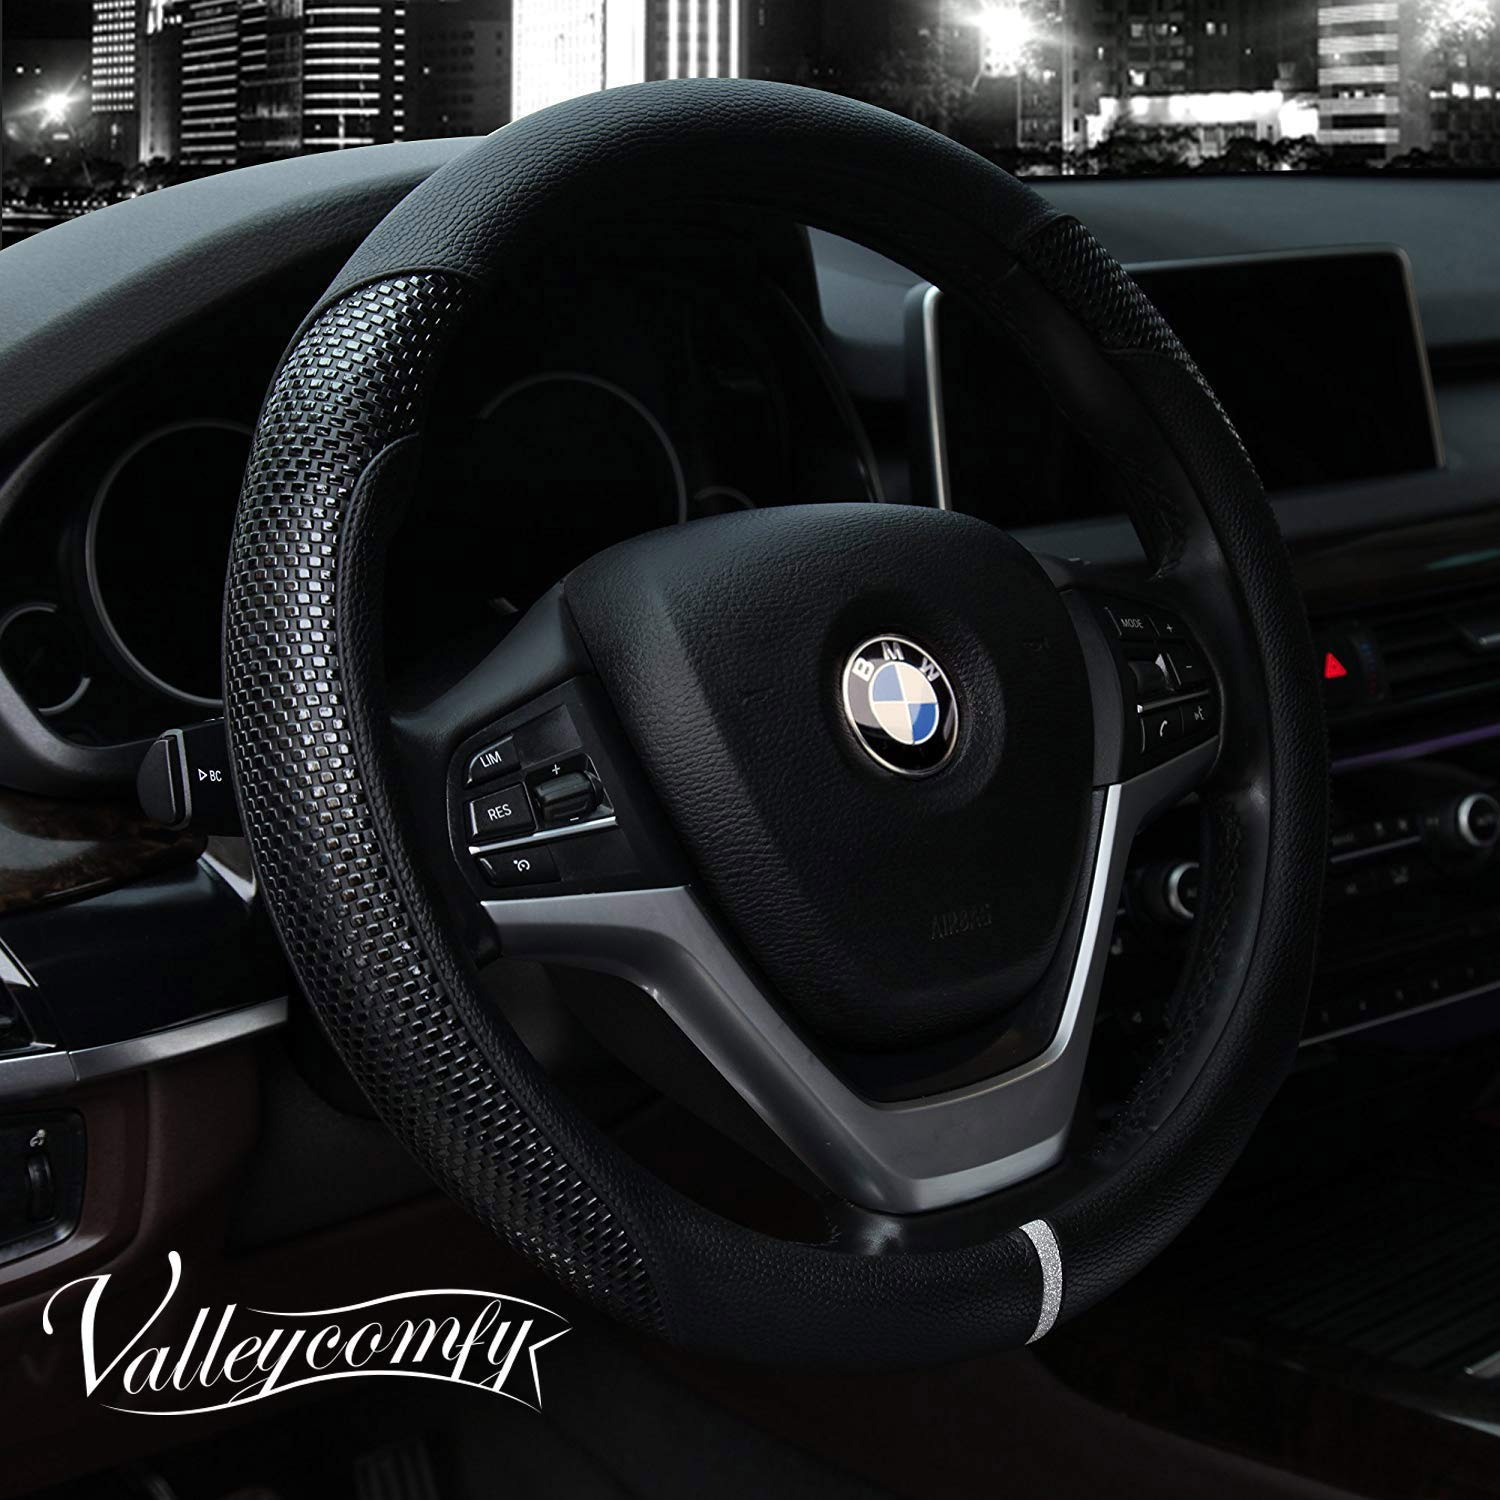 10. Valleycomfy Steering Wheel Cover with Microfiber Leather